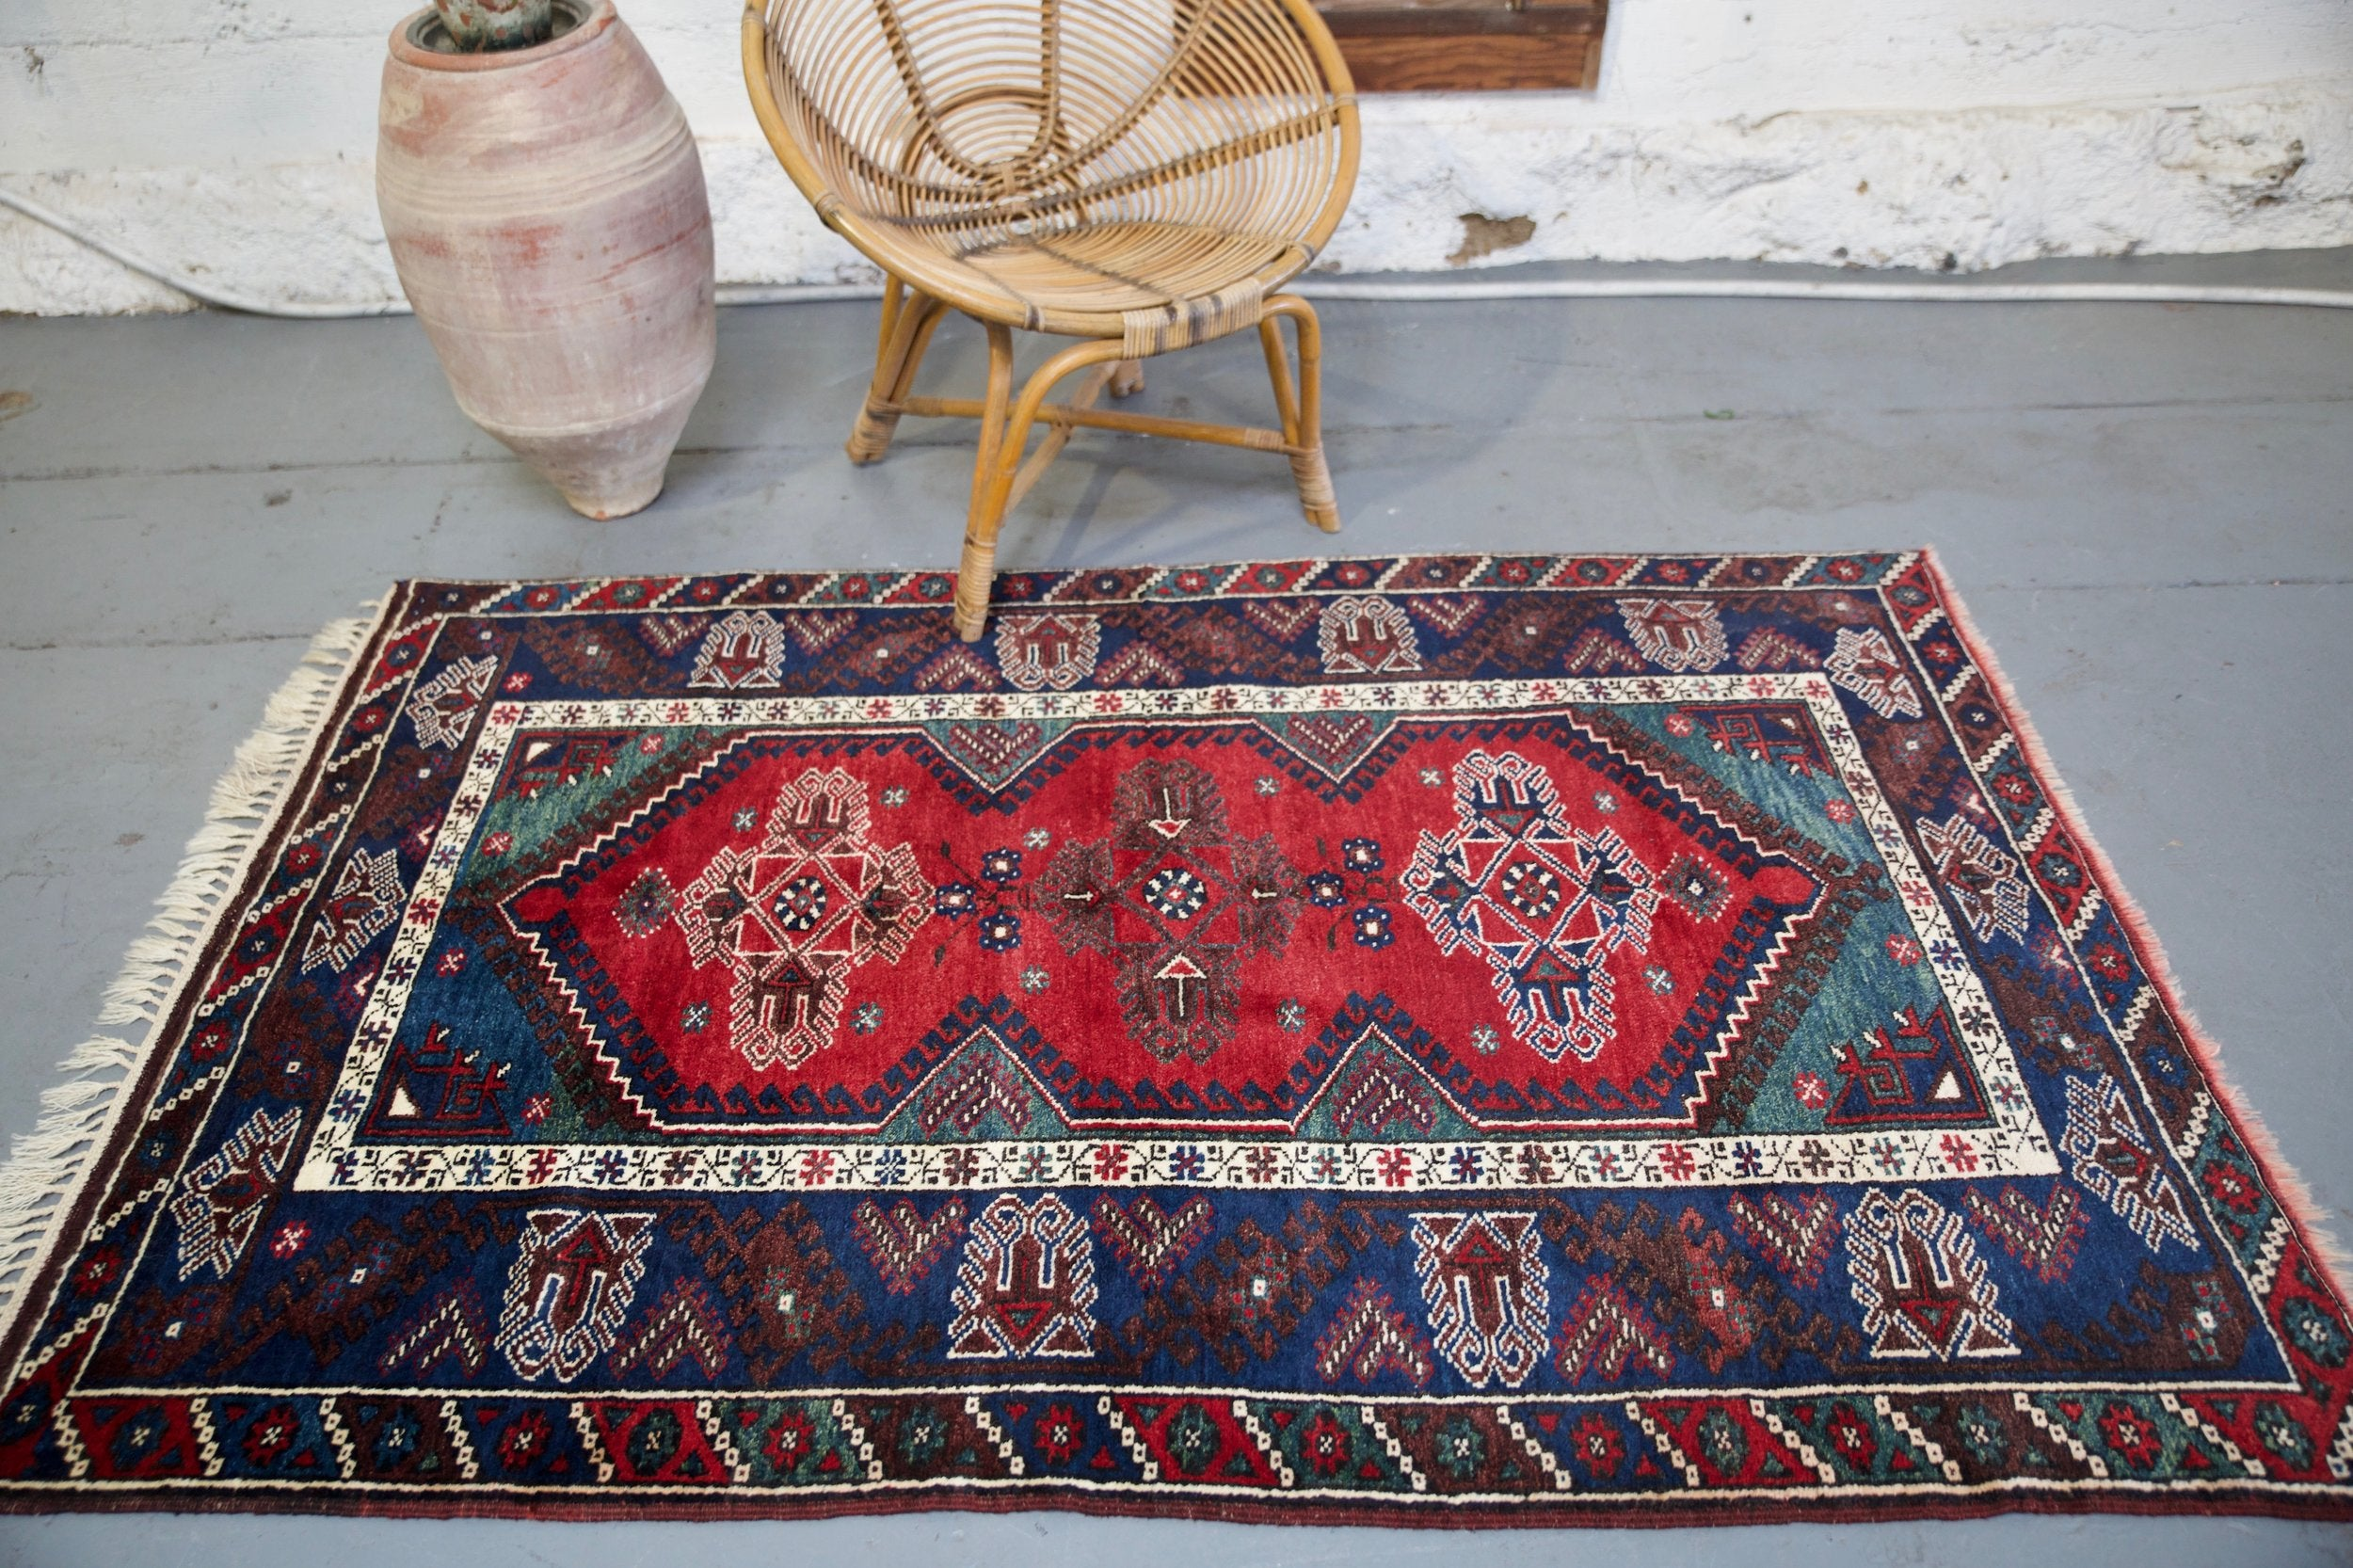 rezerved-for-elizabeth-hernandez-old-antalya-dosemealti-carpet-41ftx64ft